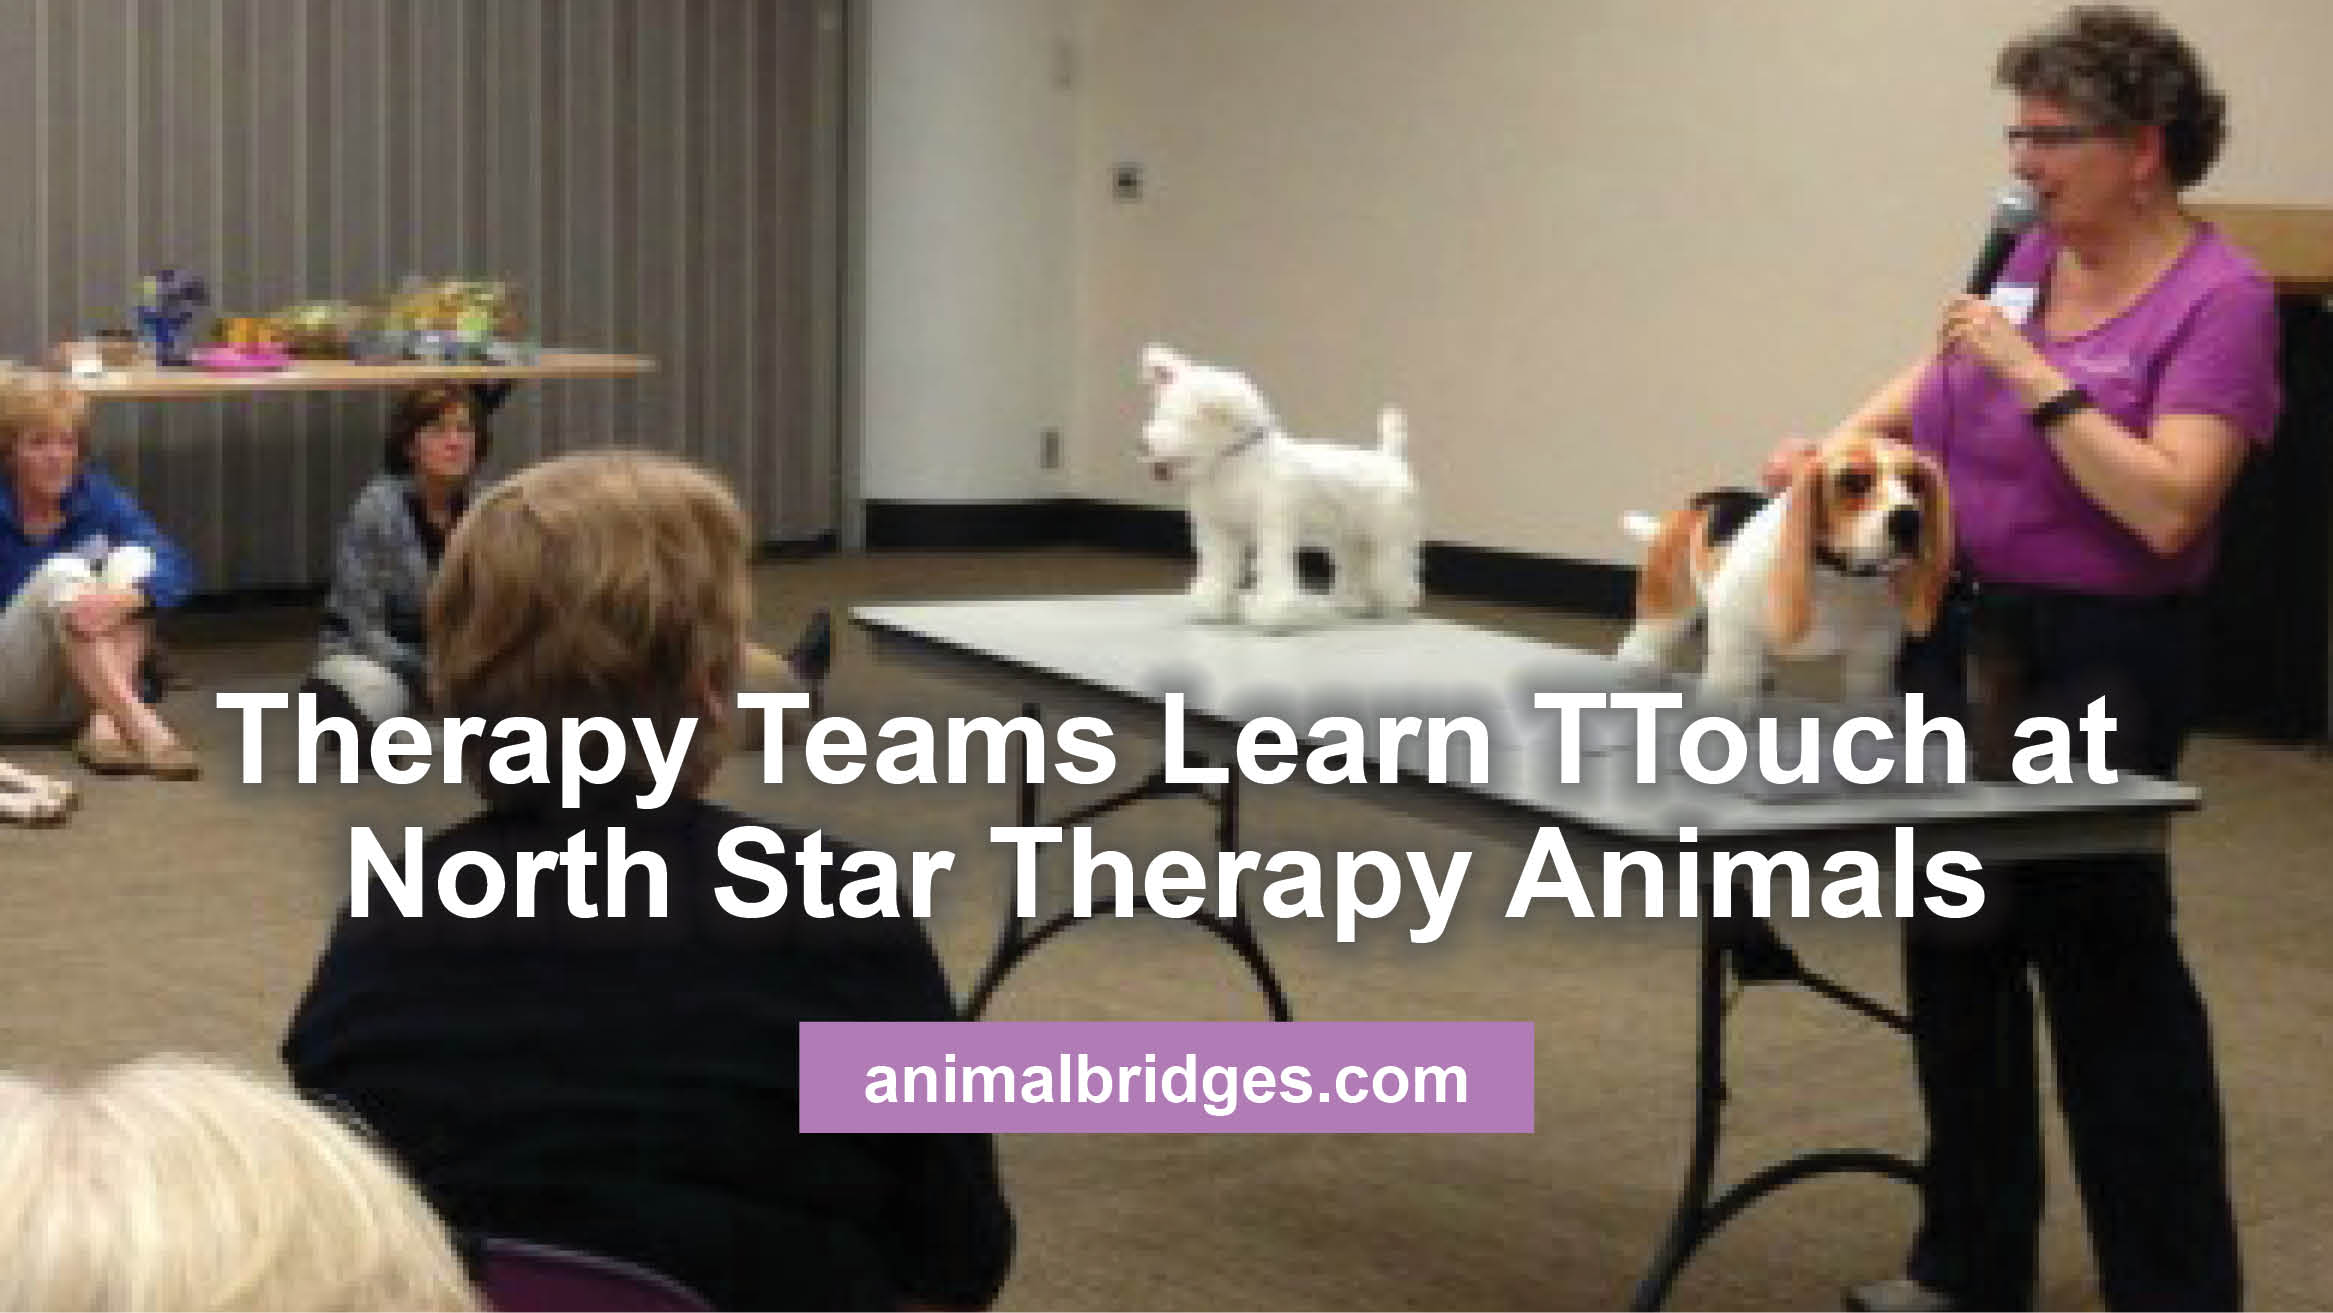 Therapy Teams Learn TTouch at North Star Therapy Animals